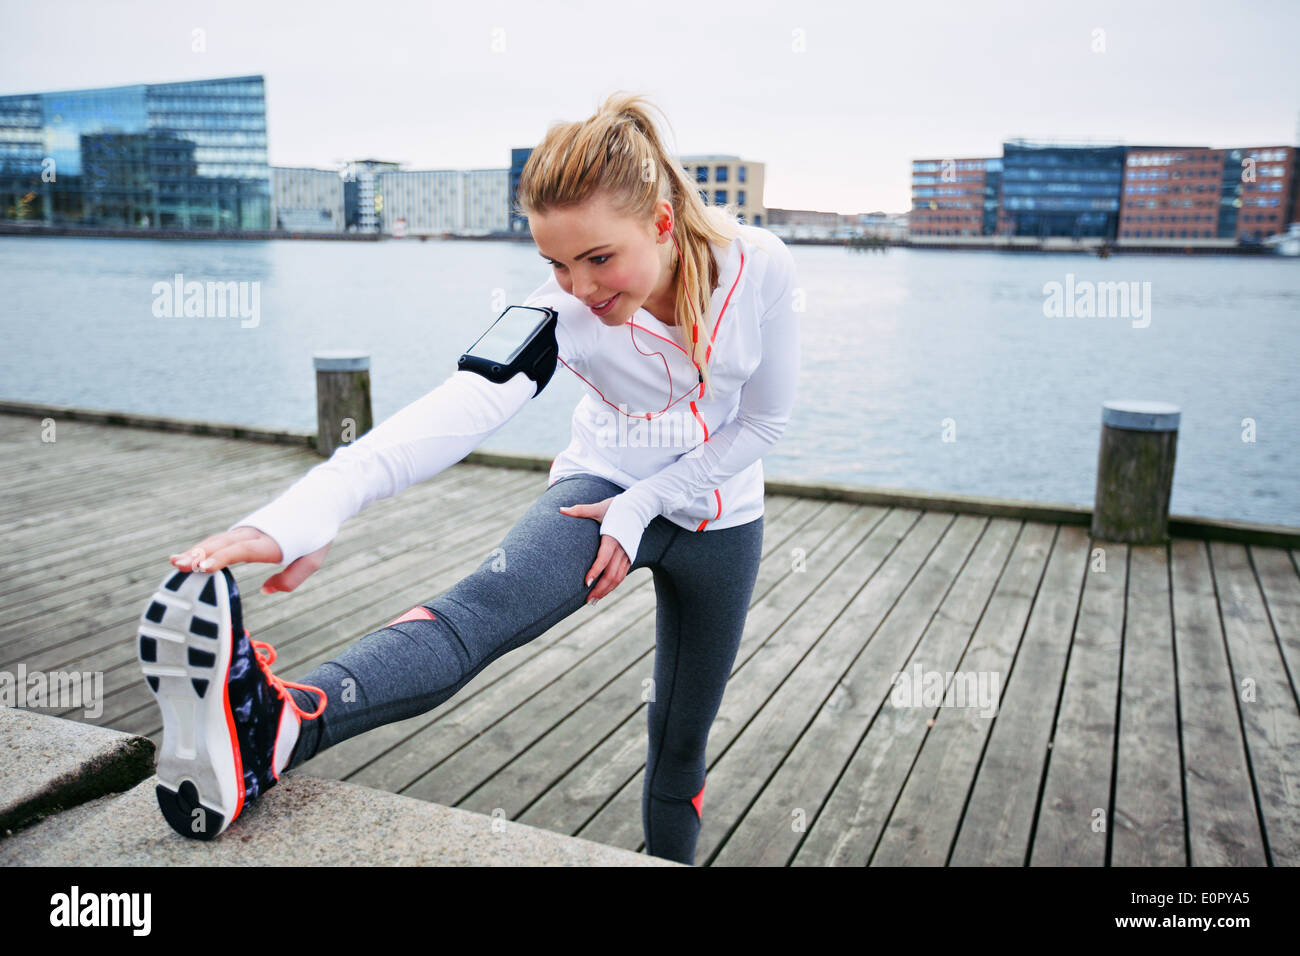 Fit young woman stretching before a run. Young female runner stretching her muscles before a training session - Stock Image